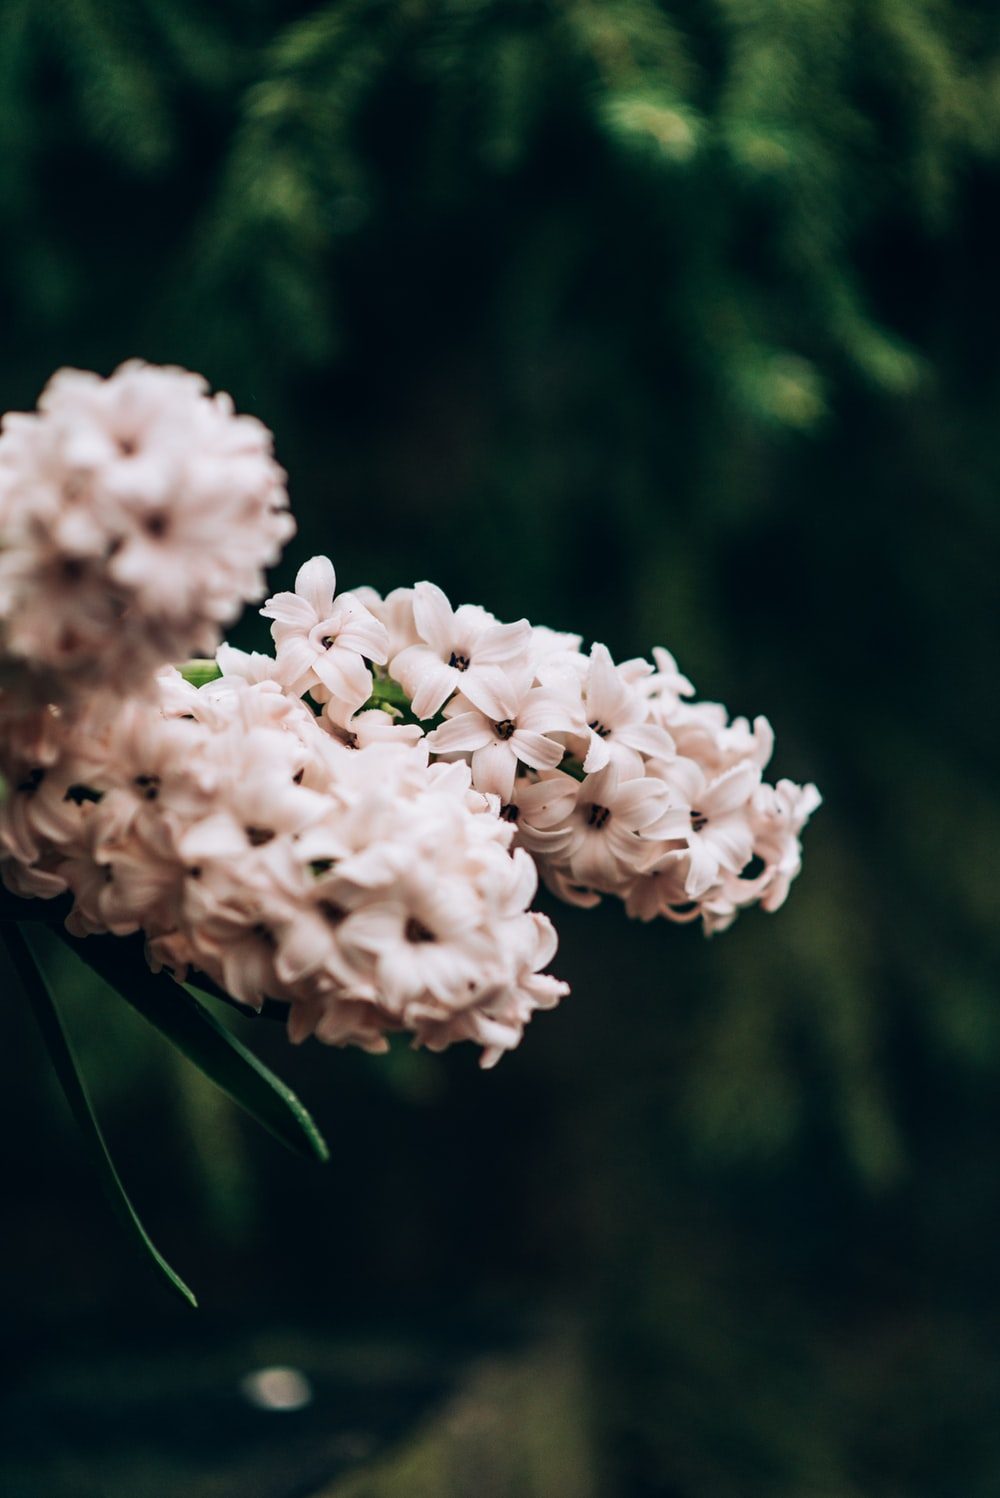 white cluster flowers in bloom